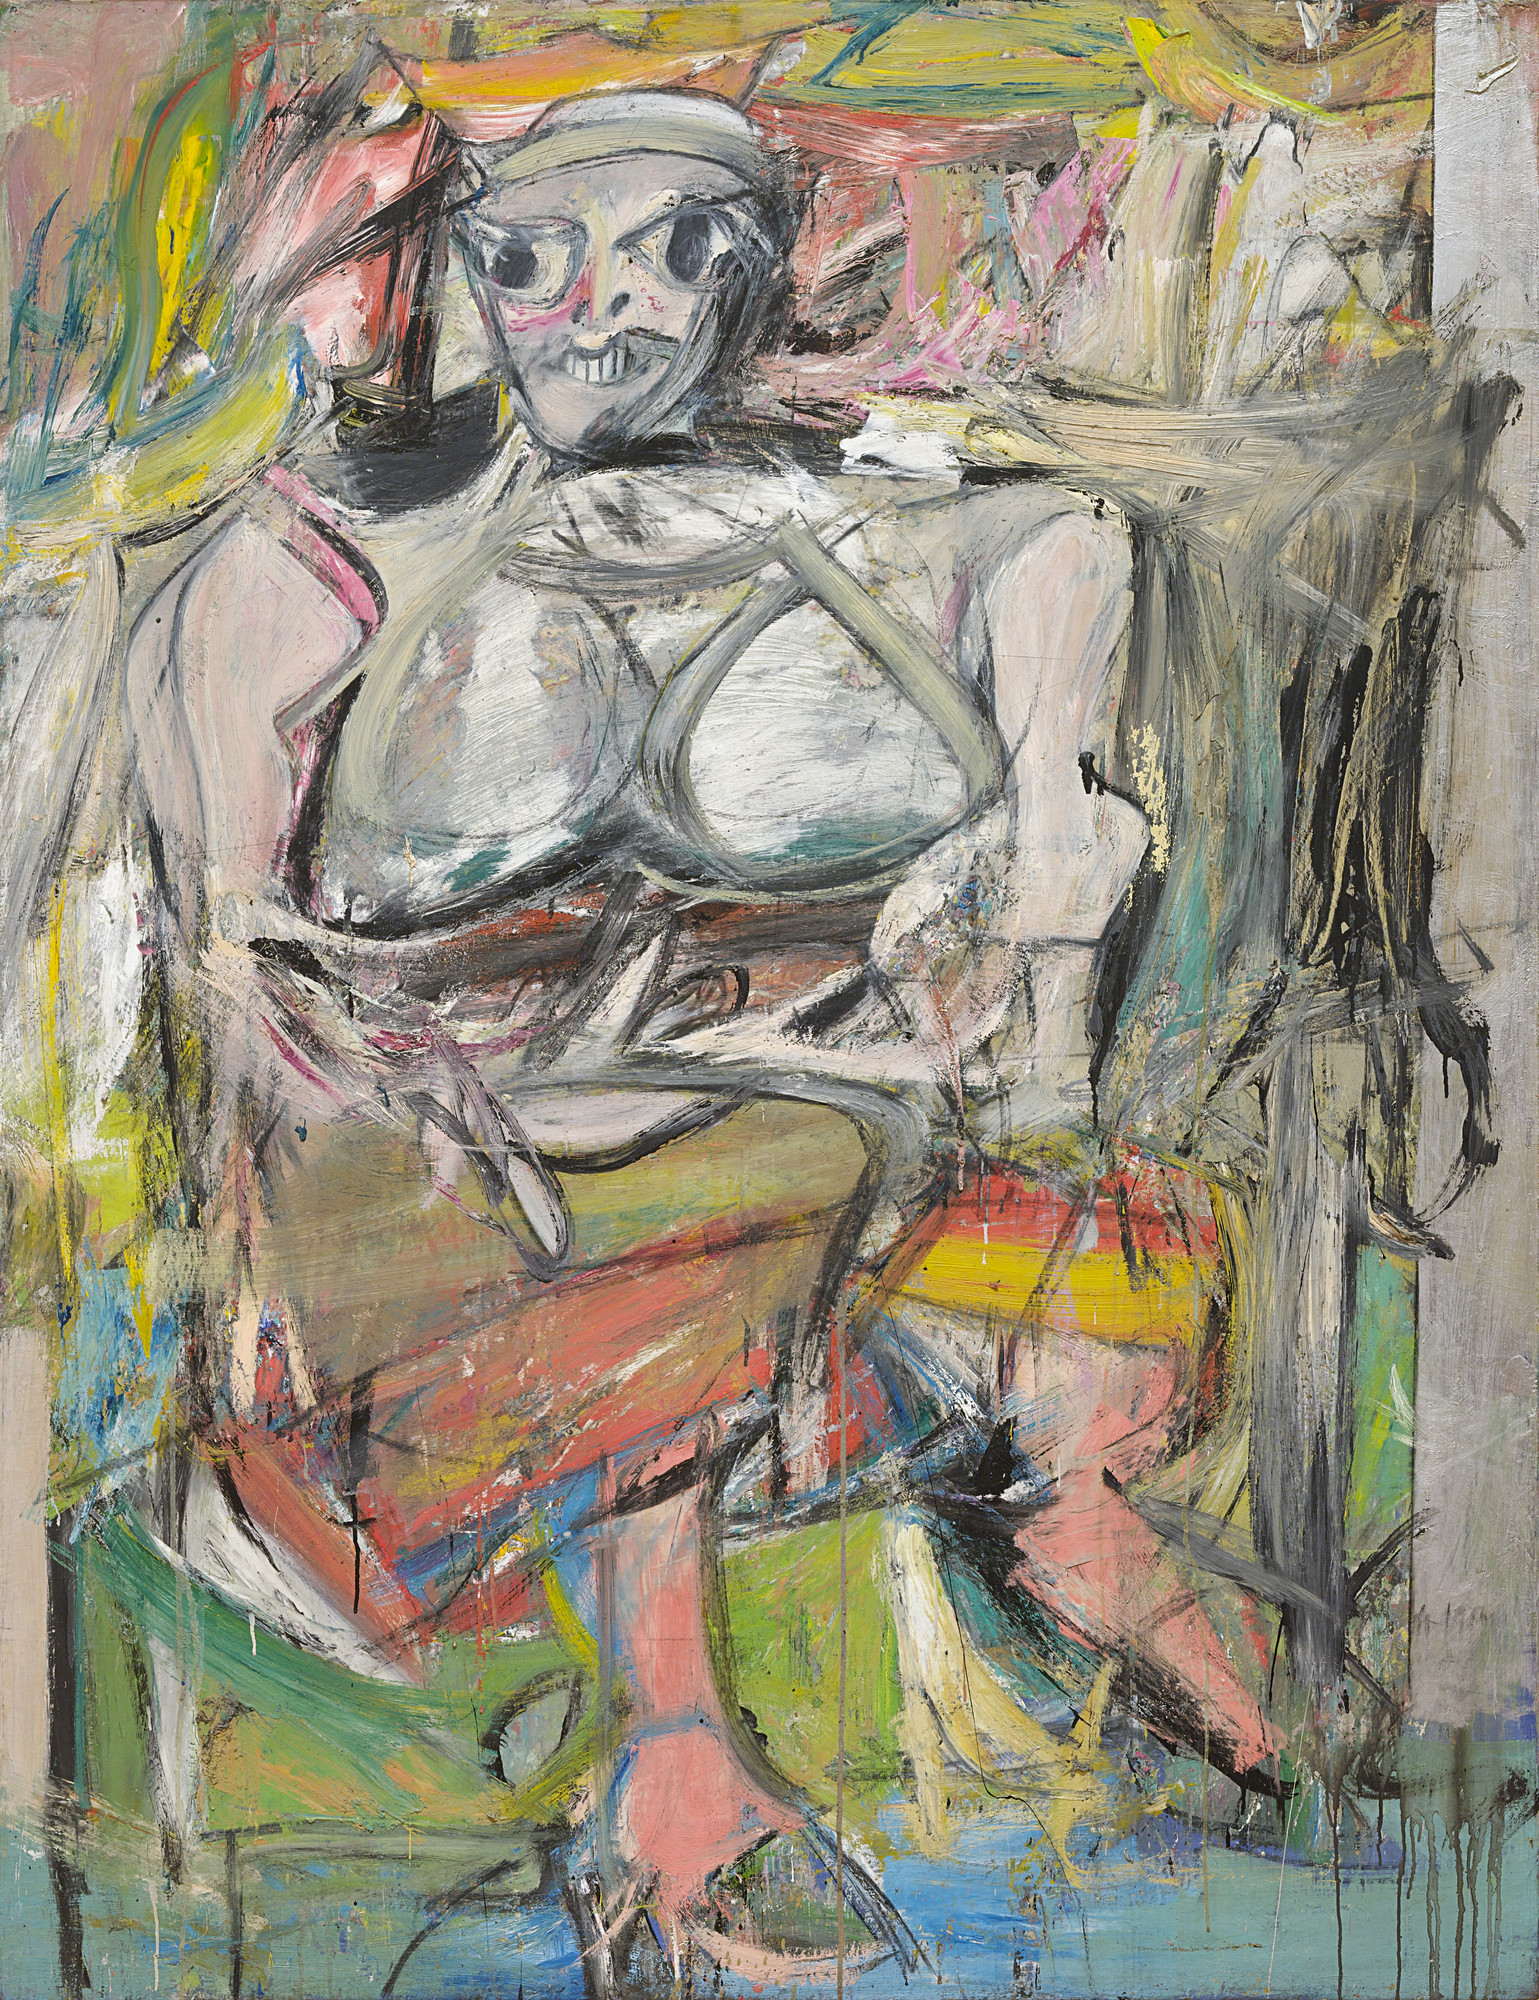 Willem de Kooning, Woman I., 1950-52